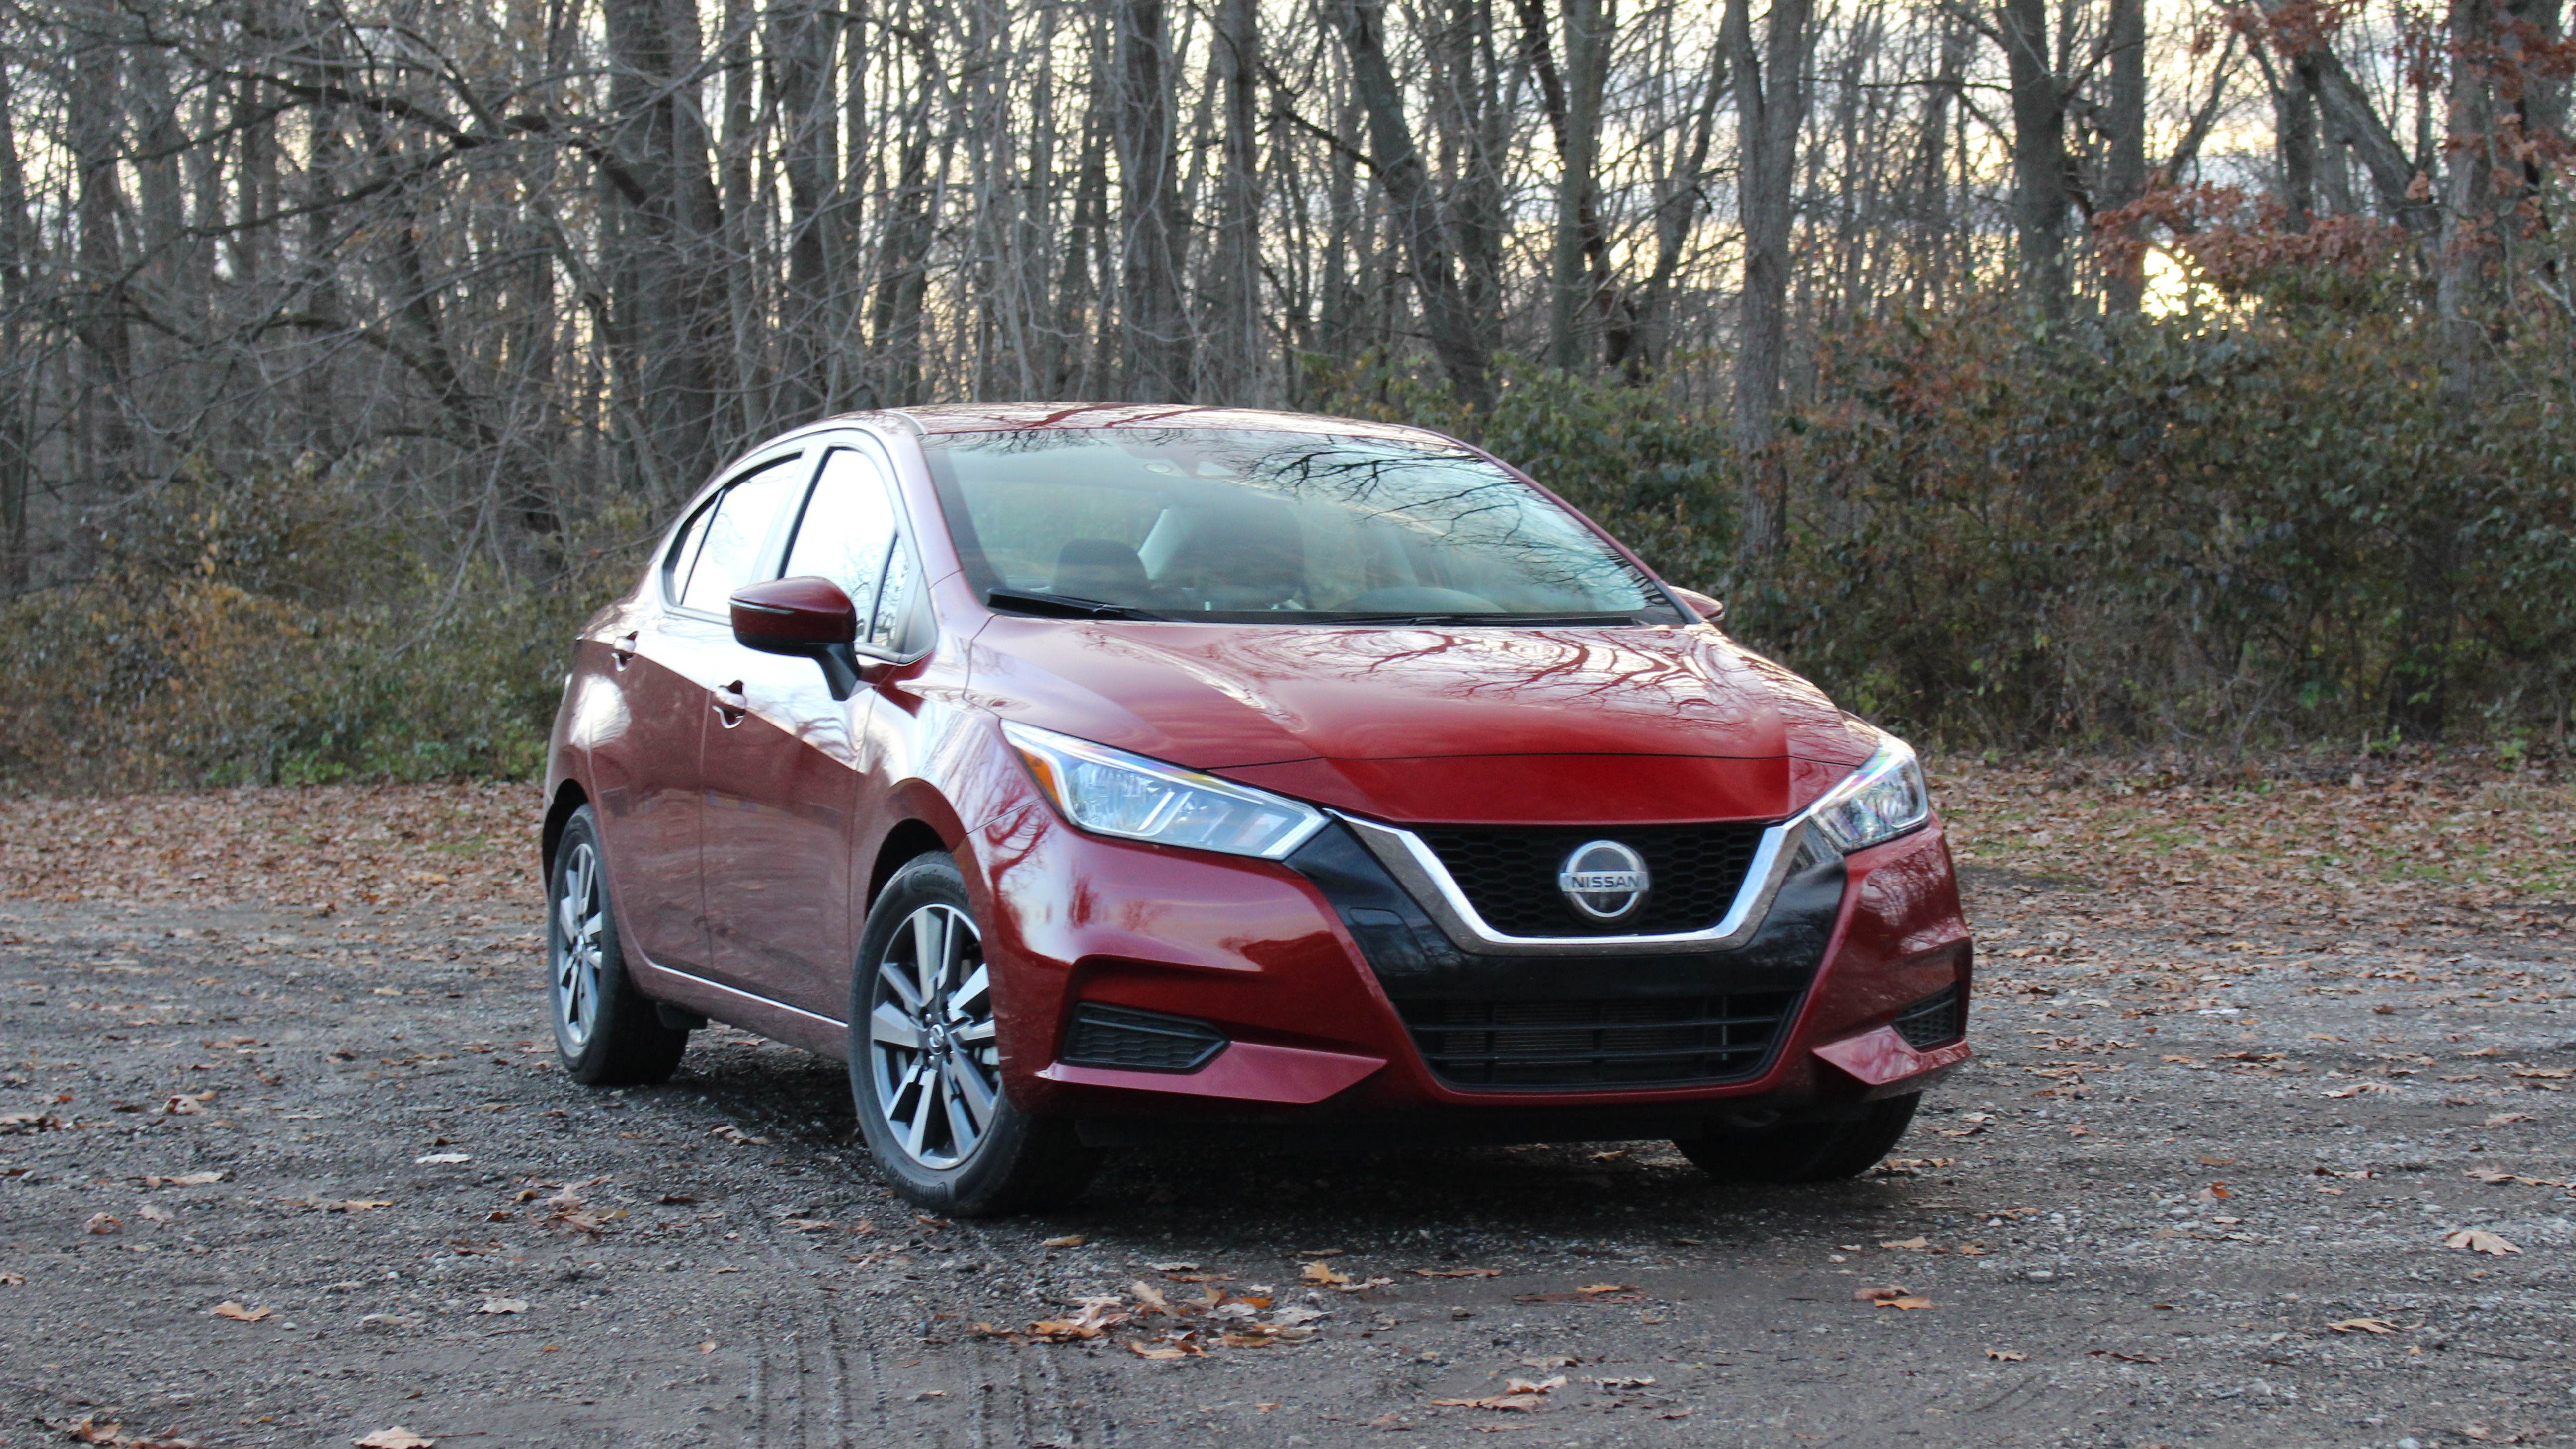 2020 nissan versa review | price, specs, features and